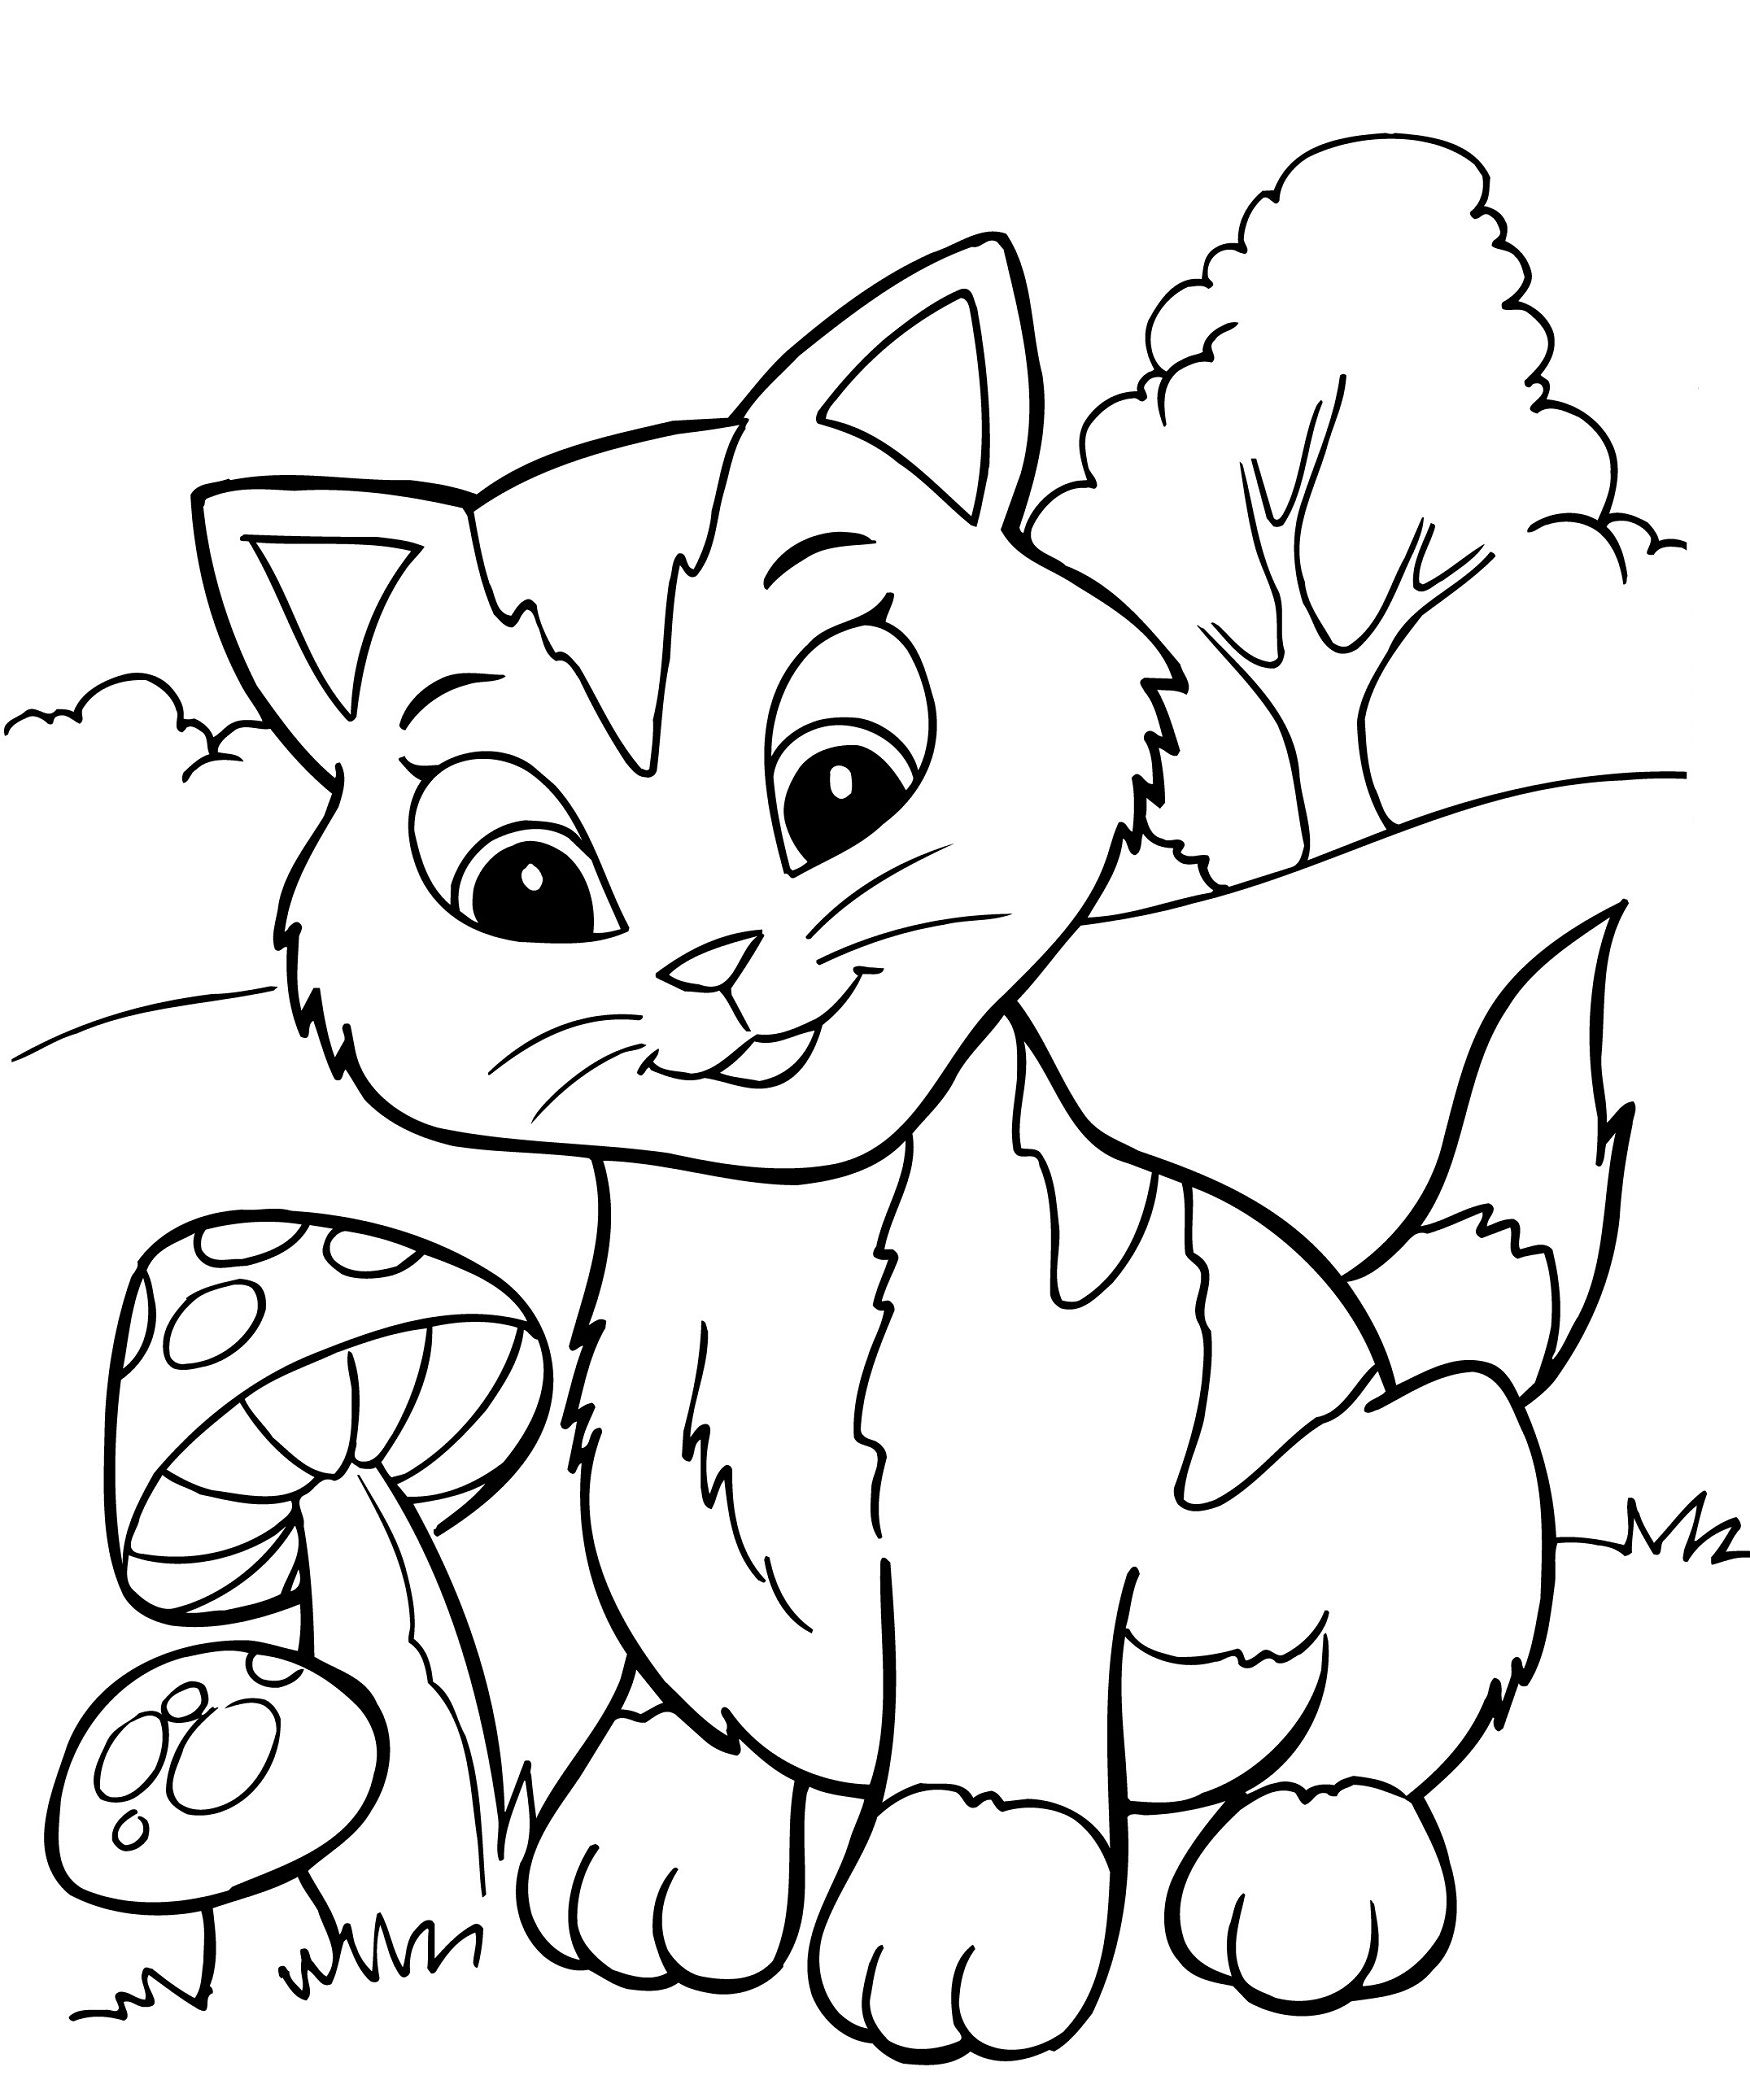 Cute Kitten Coloring Pages Free Printable Free Coloring Sheets Animal Coloring Pages Cat Coloring Page Halloween Coloring Pages